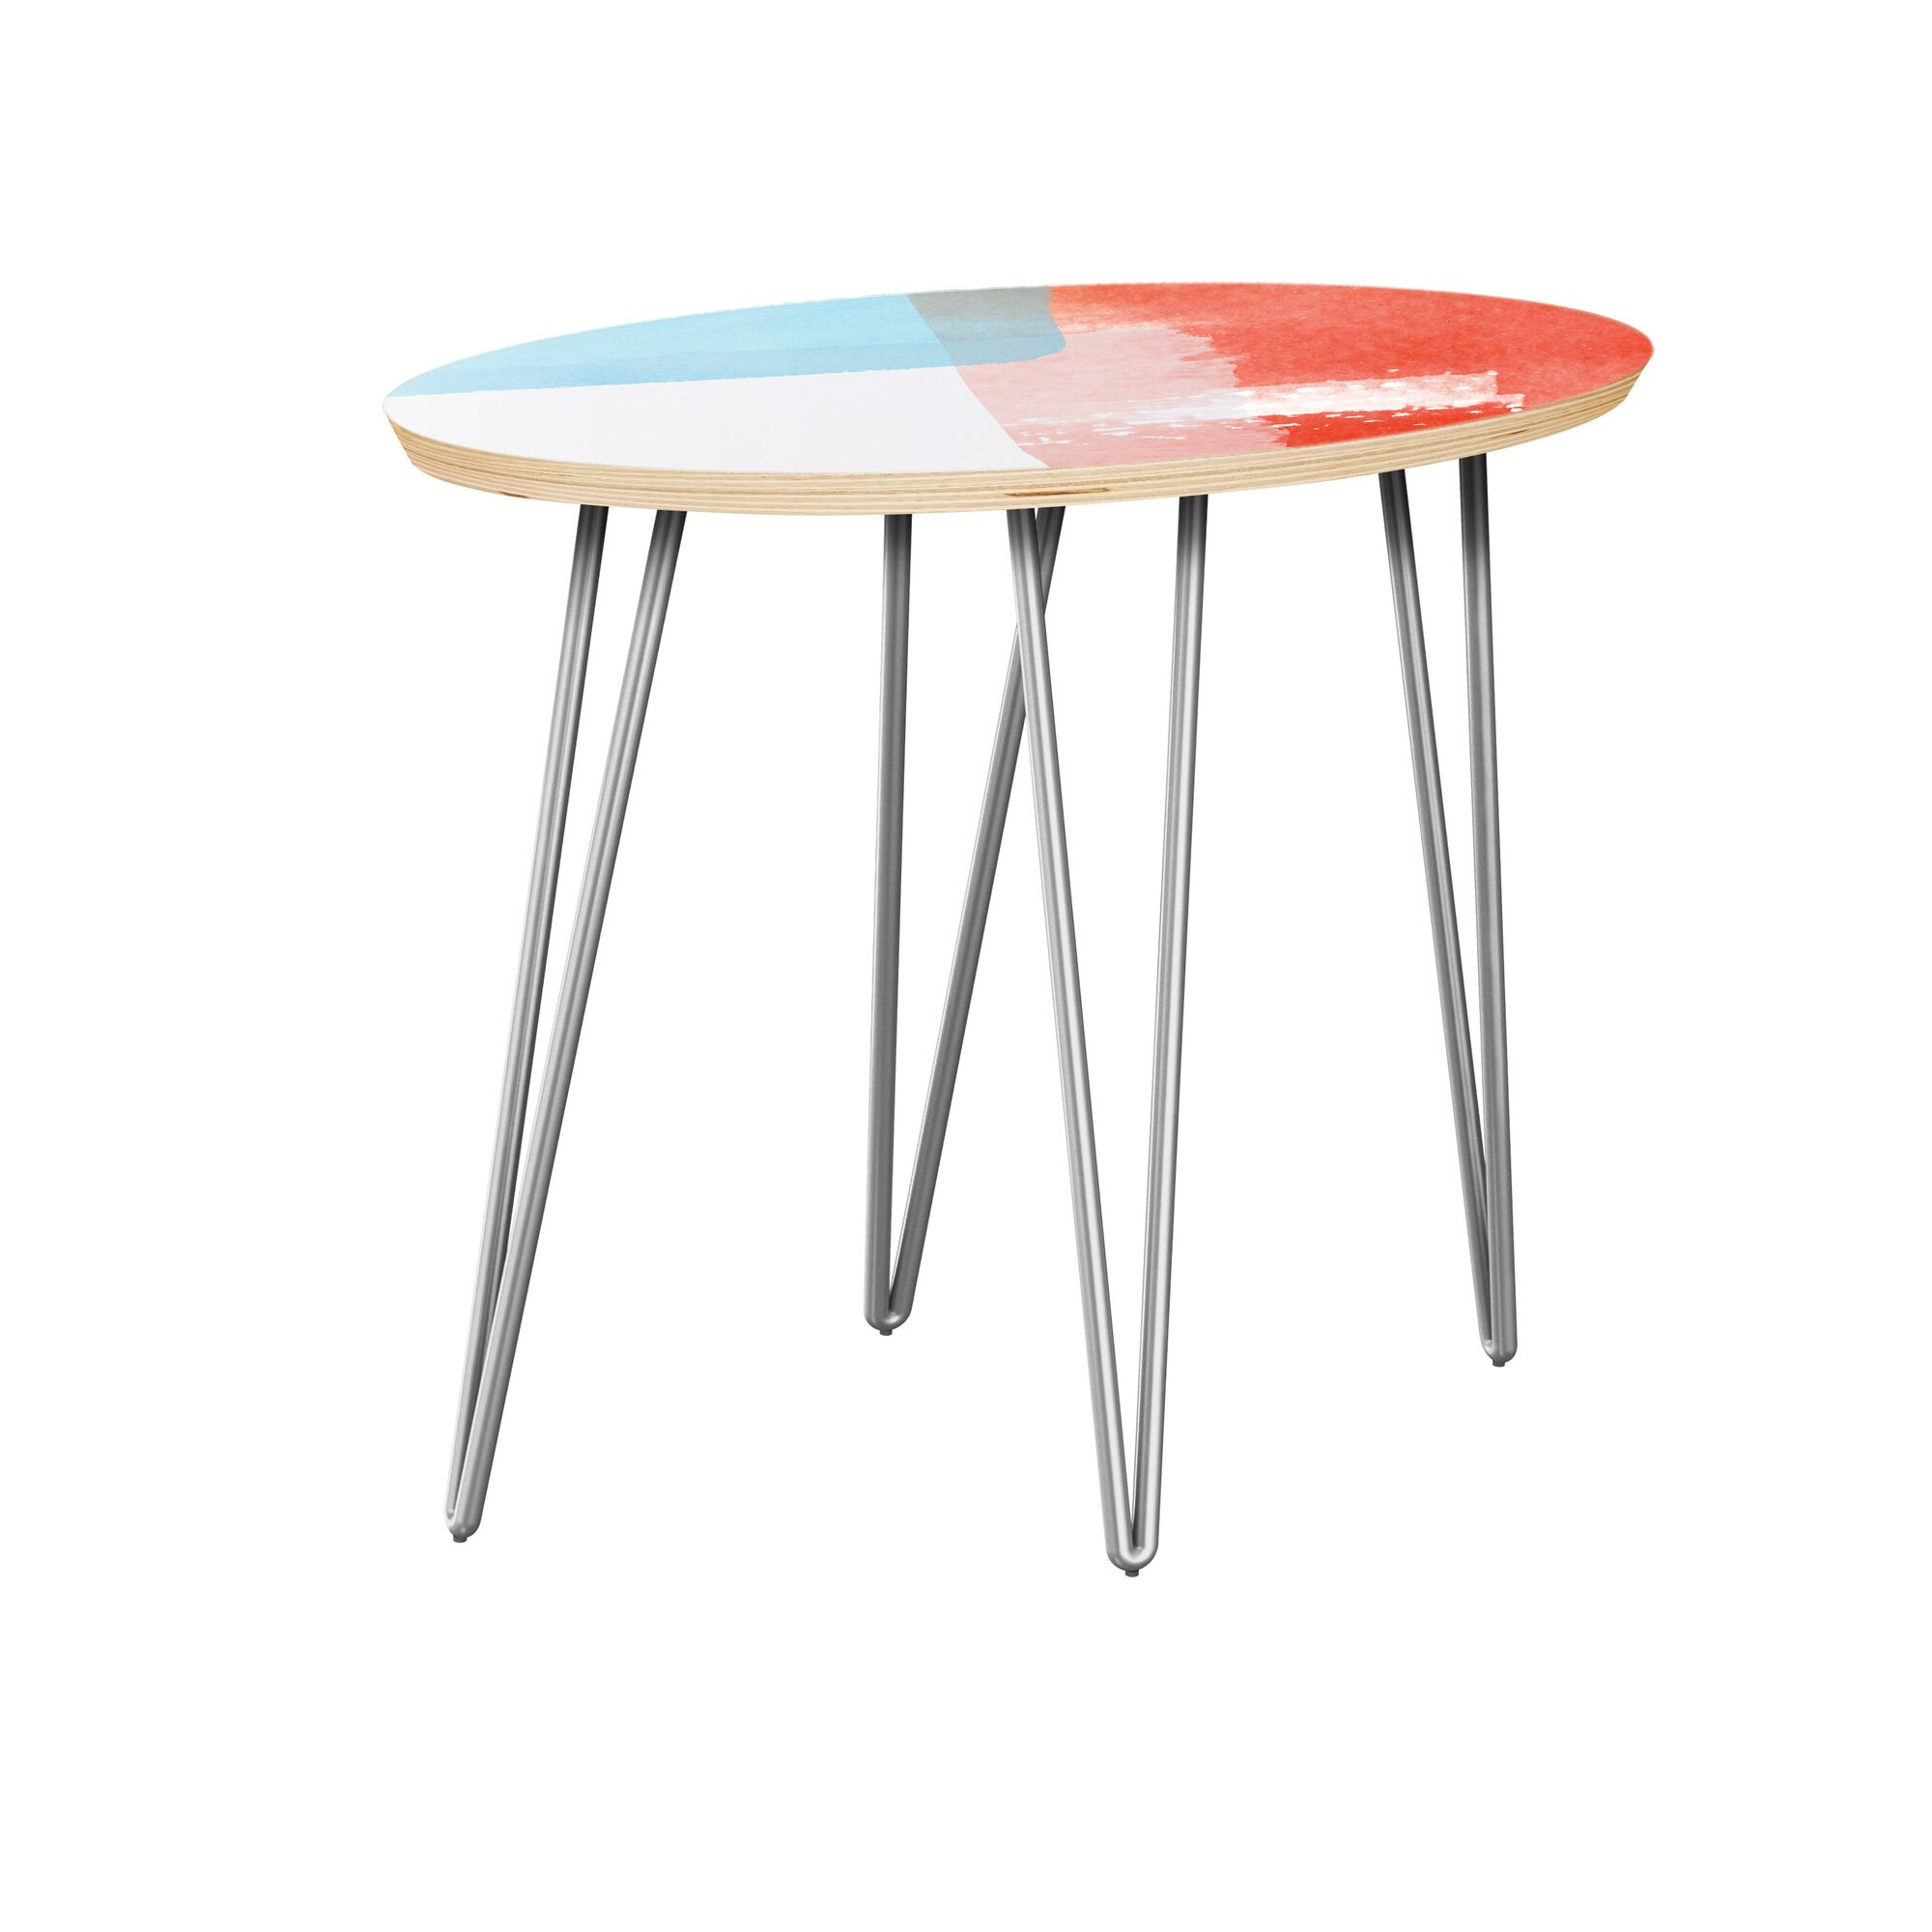 Fackler End Table Table Top Color: Natural, Table Base Color: Chrome